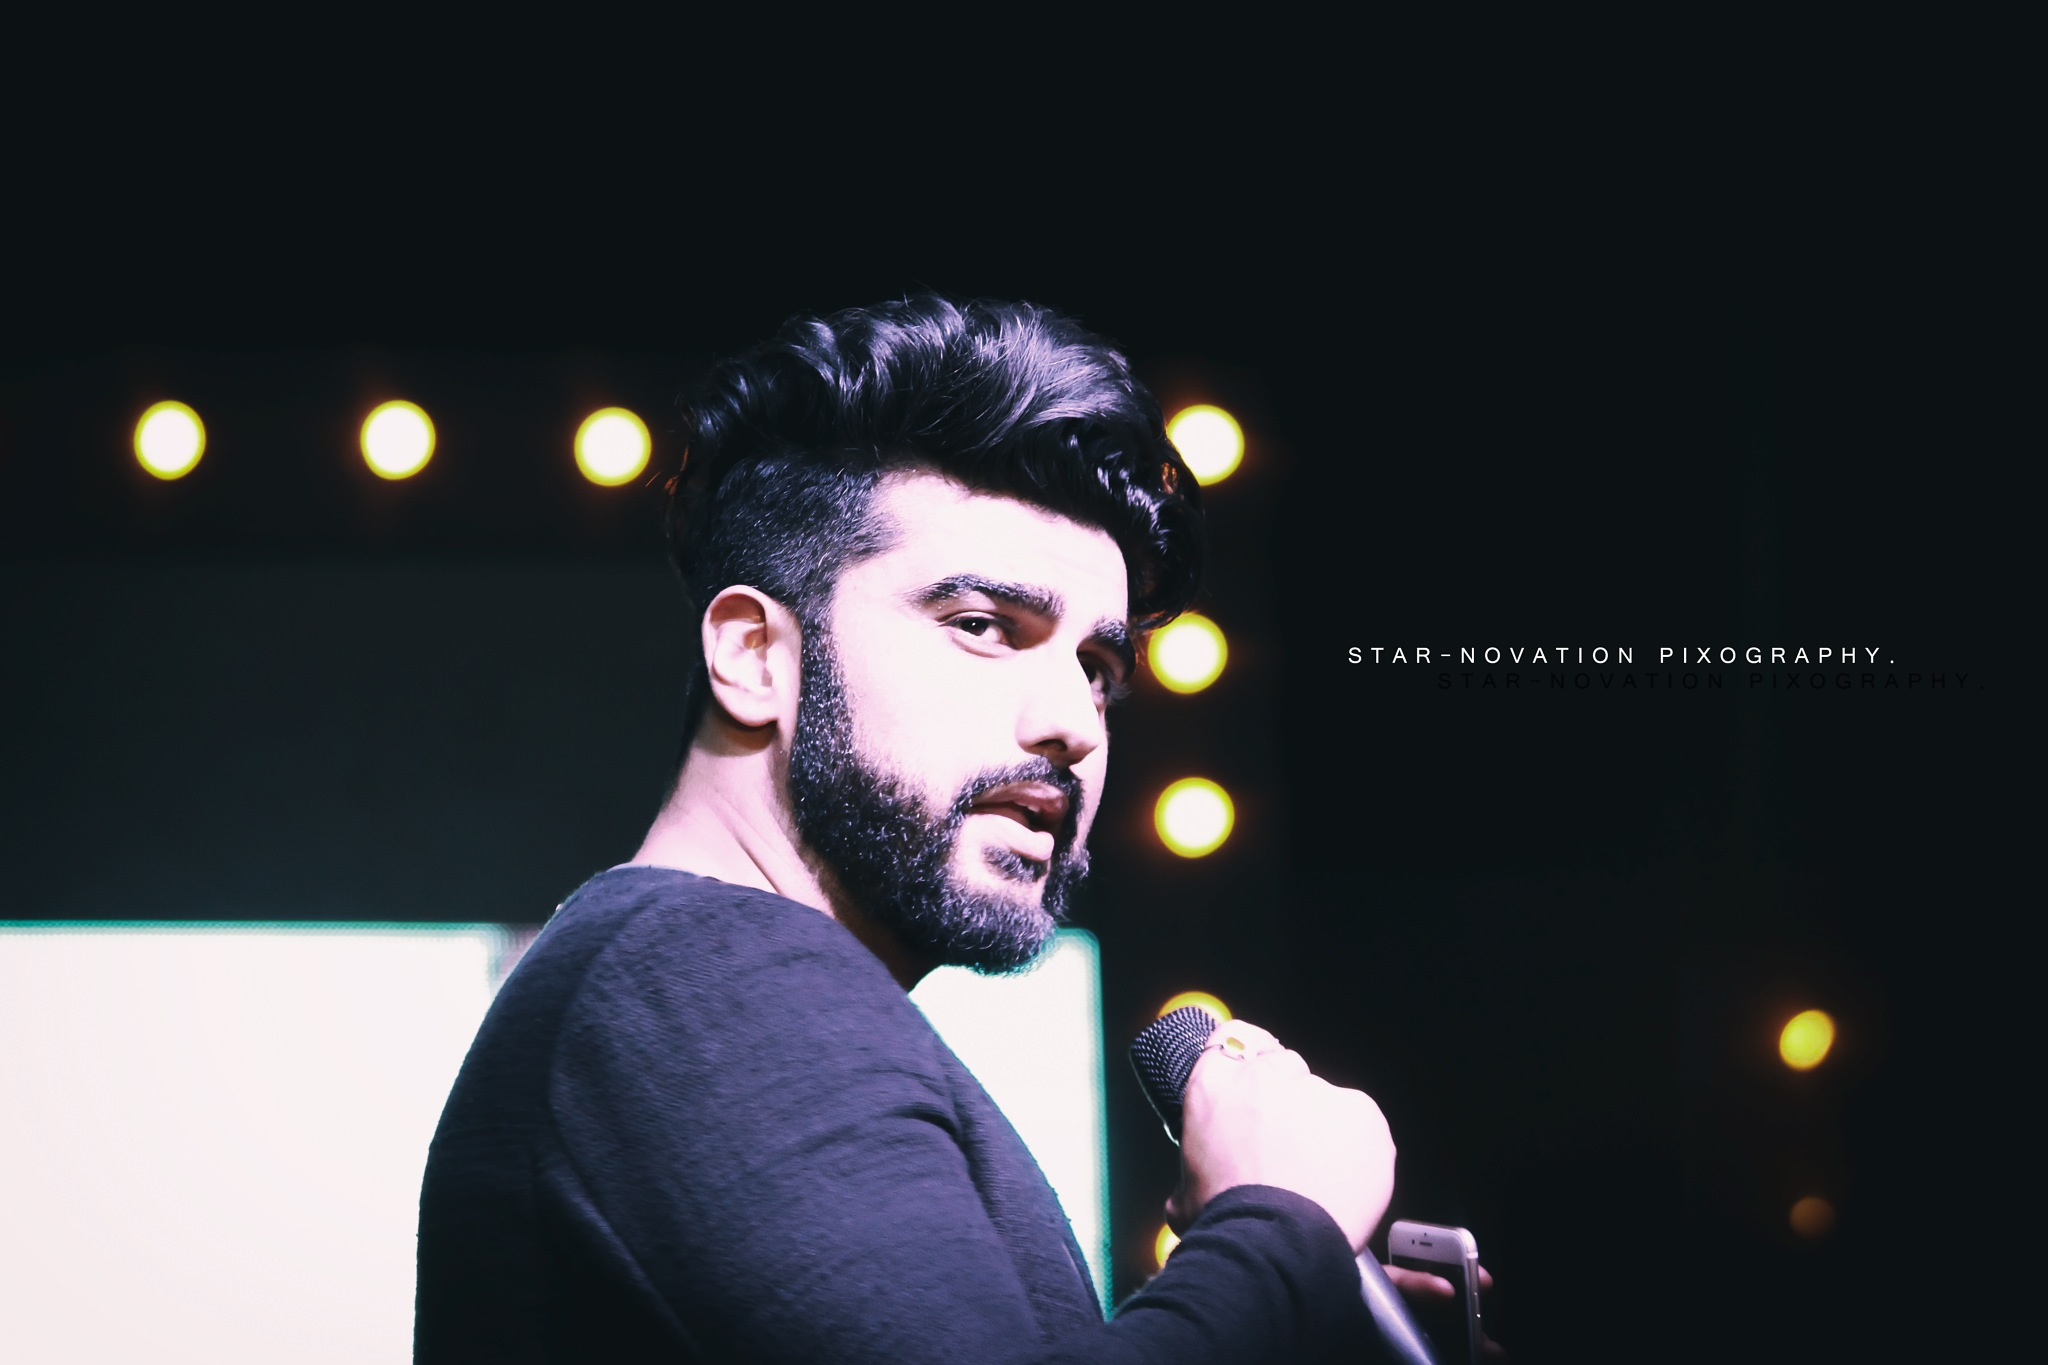 'Arjun Kapoor' for promotion of 'Half Girlfriend' by starnovationpixography